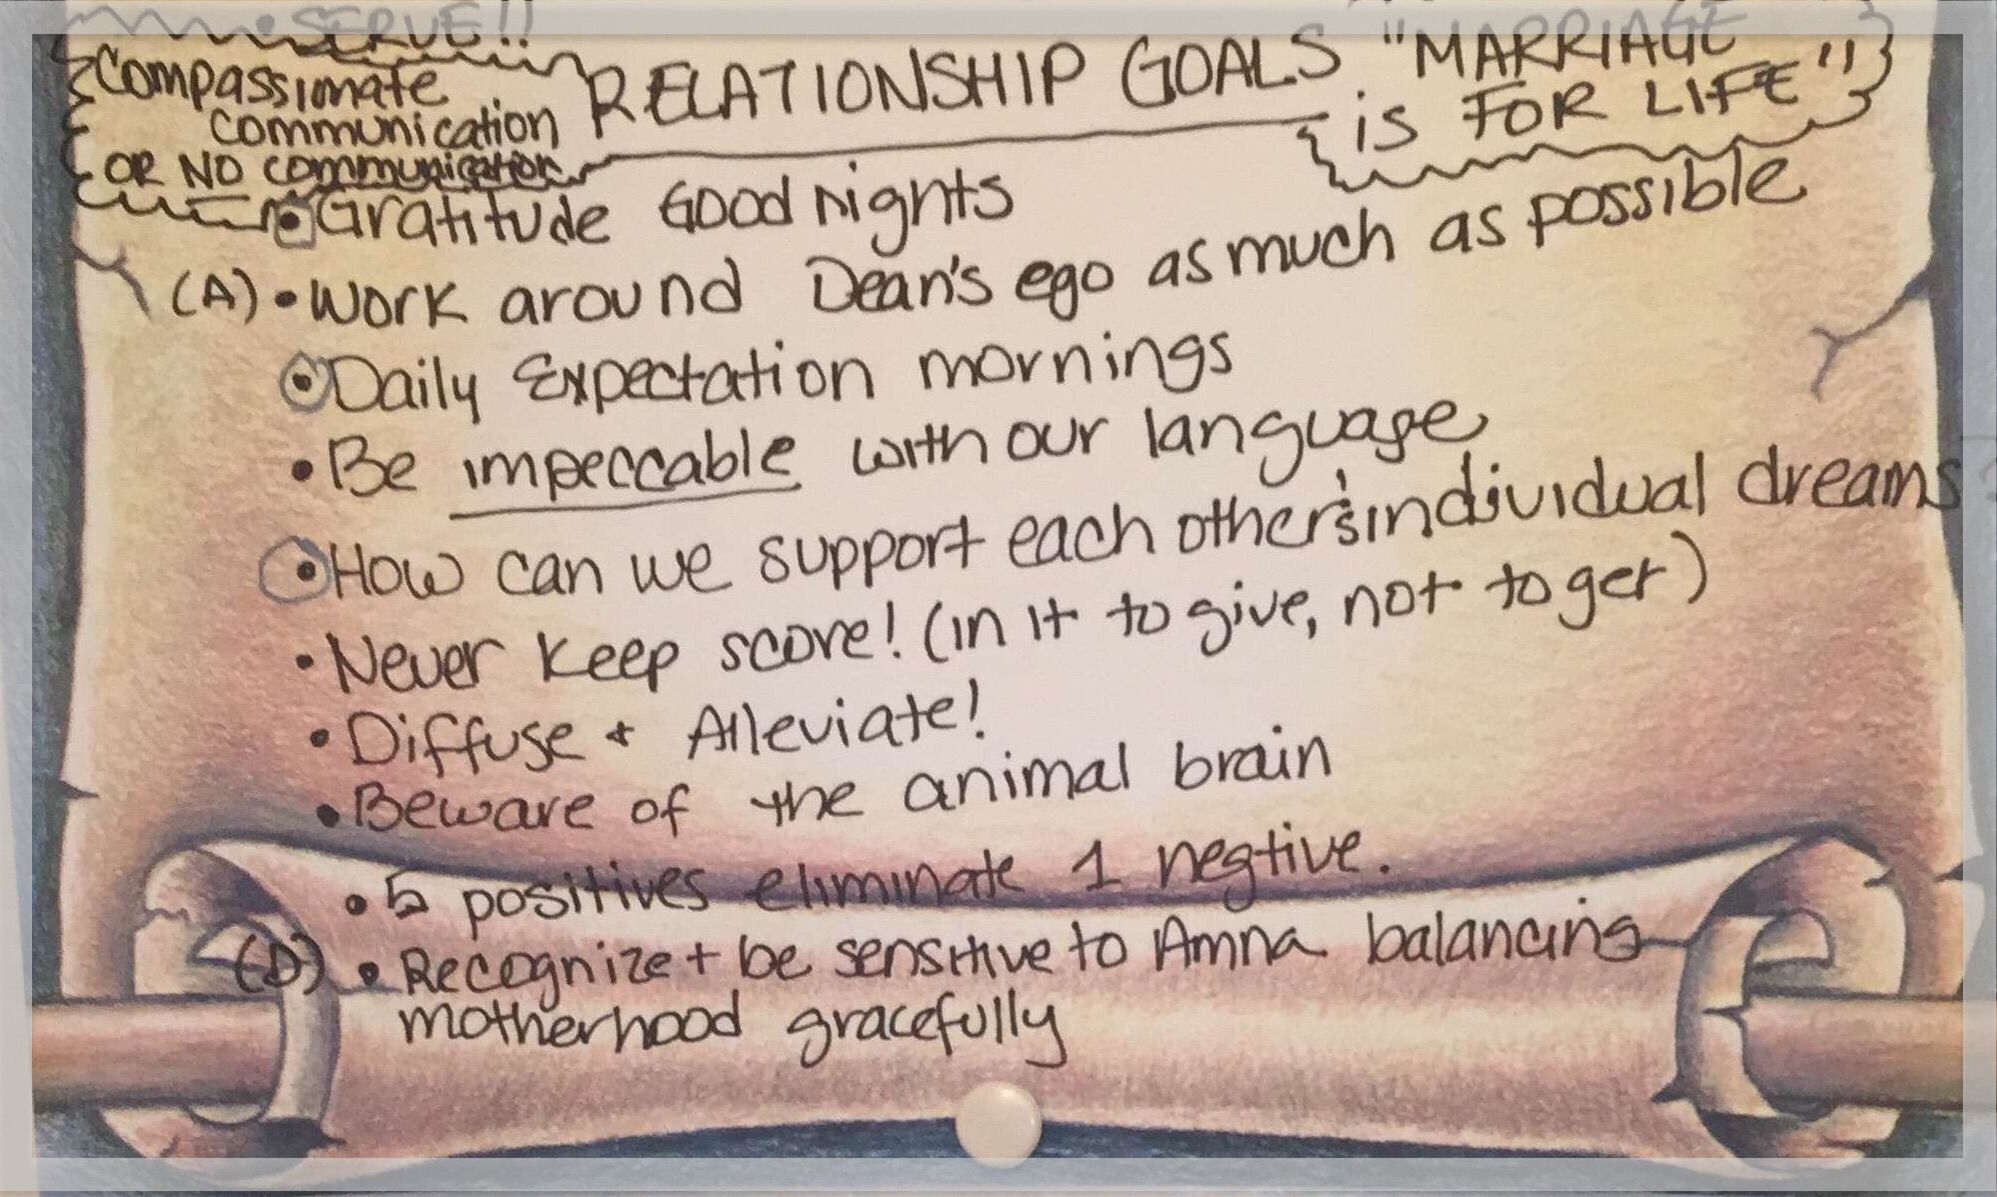 11 Tips to Have a Long-Lasting, Happy Relationship